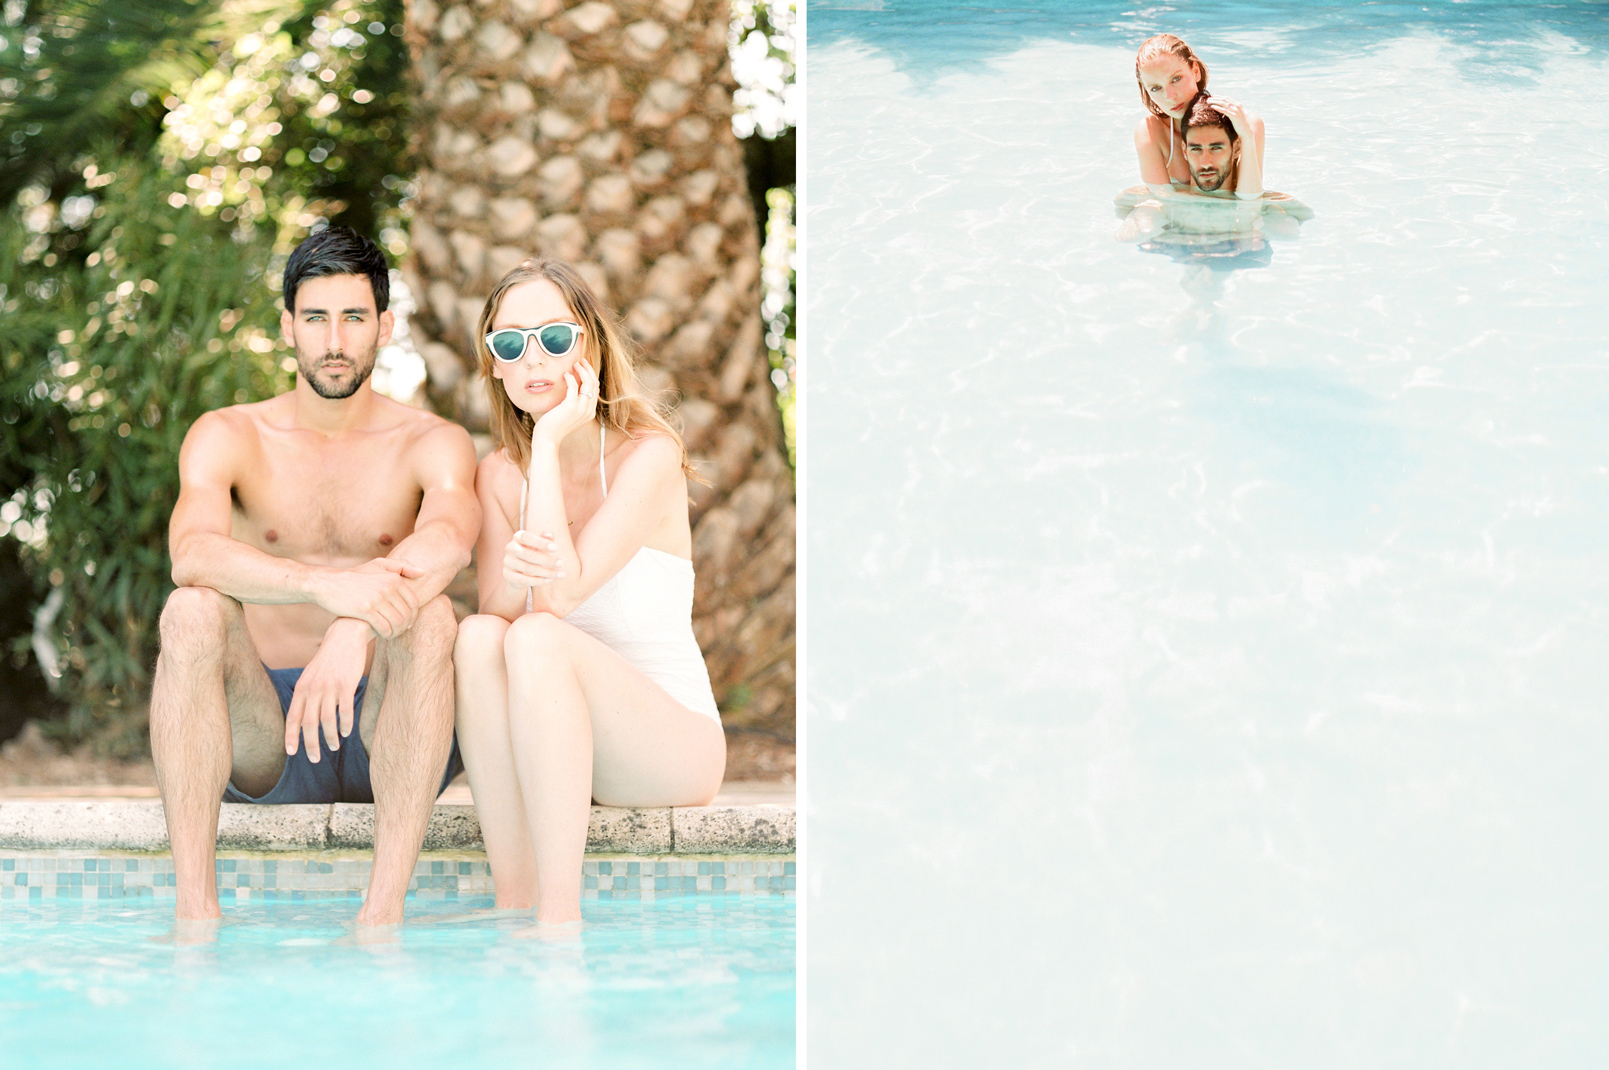 Saint Tropez Honeymoon Photo Session by Ashley Ludaescher Photography (4)